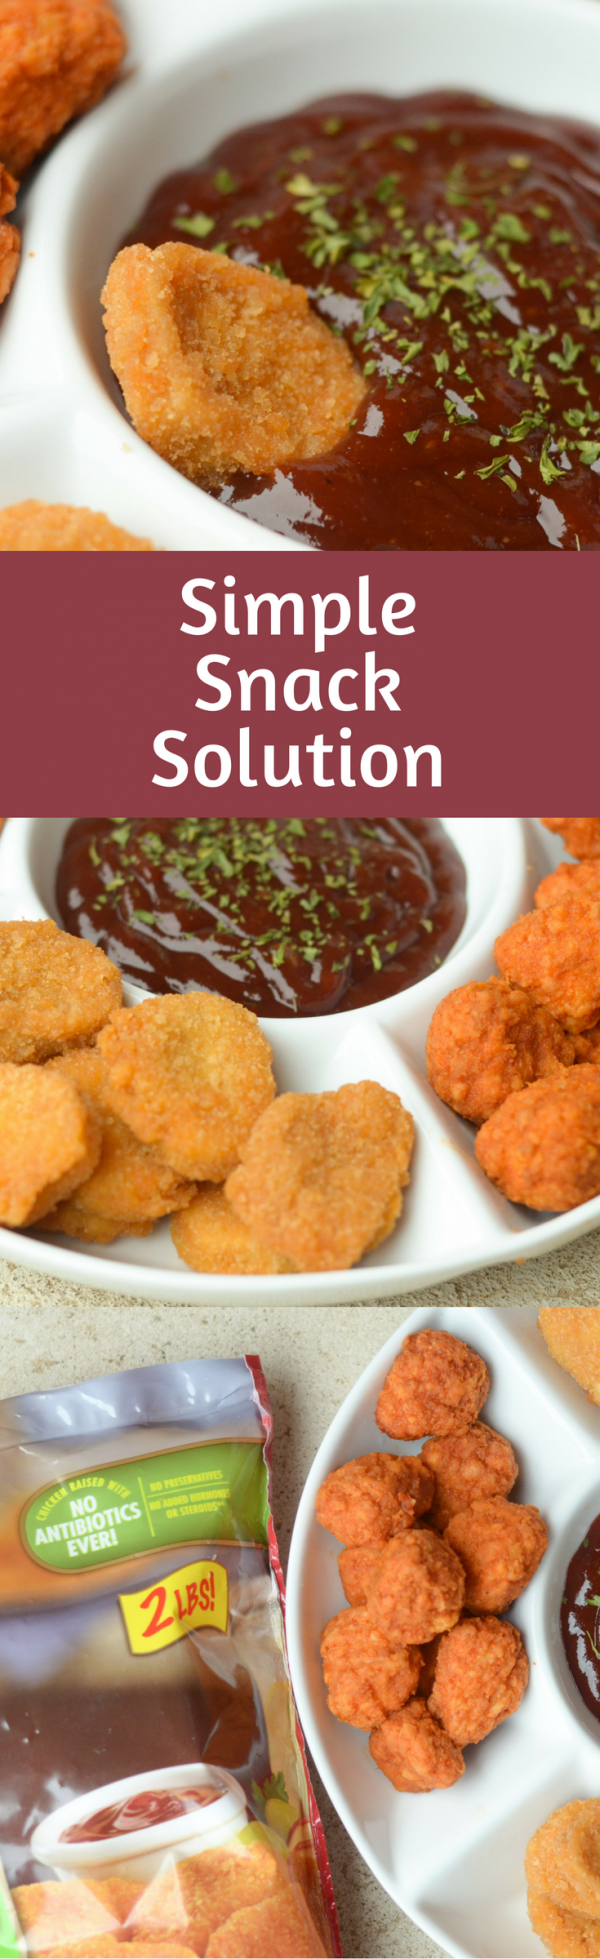 Simple Snack Solutions